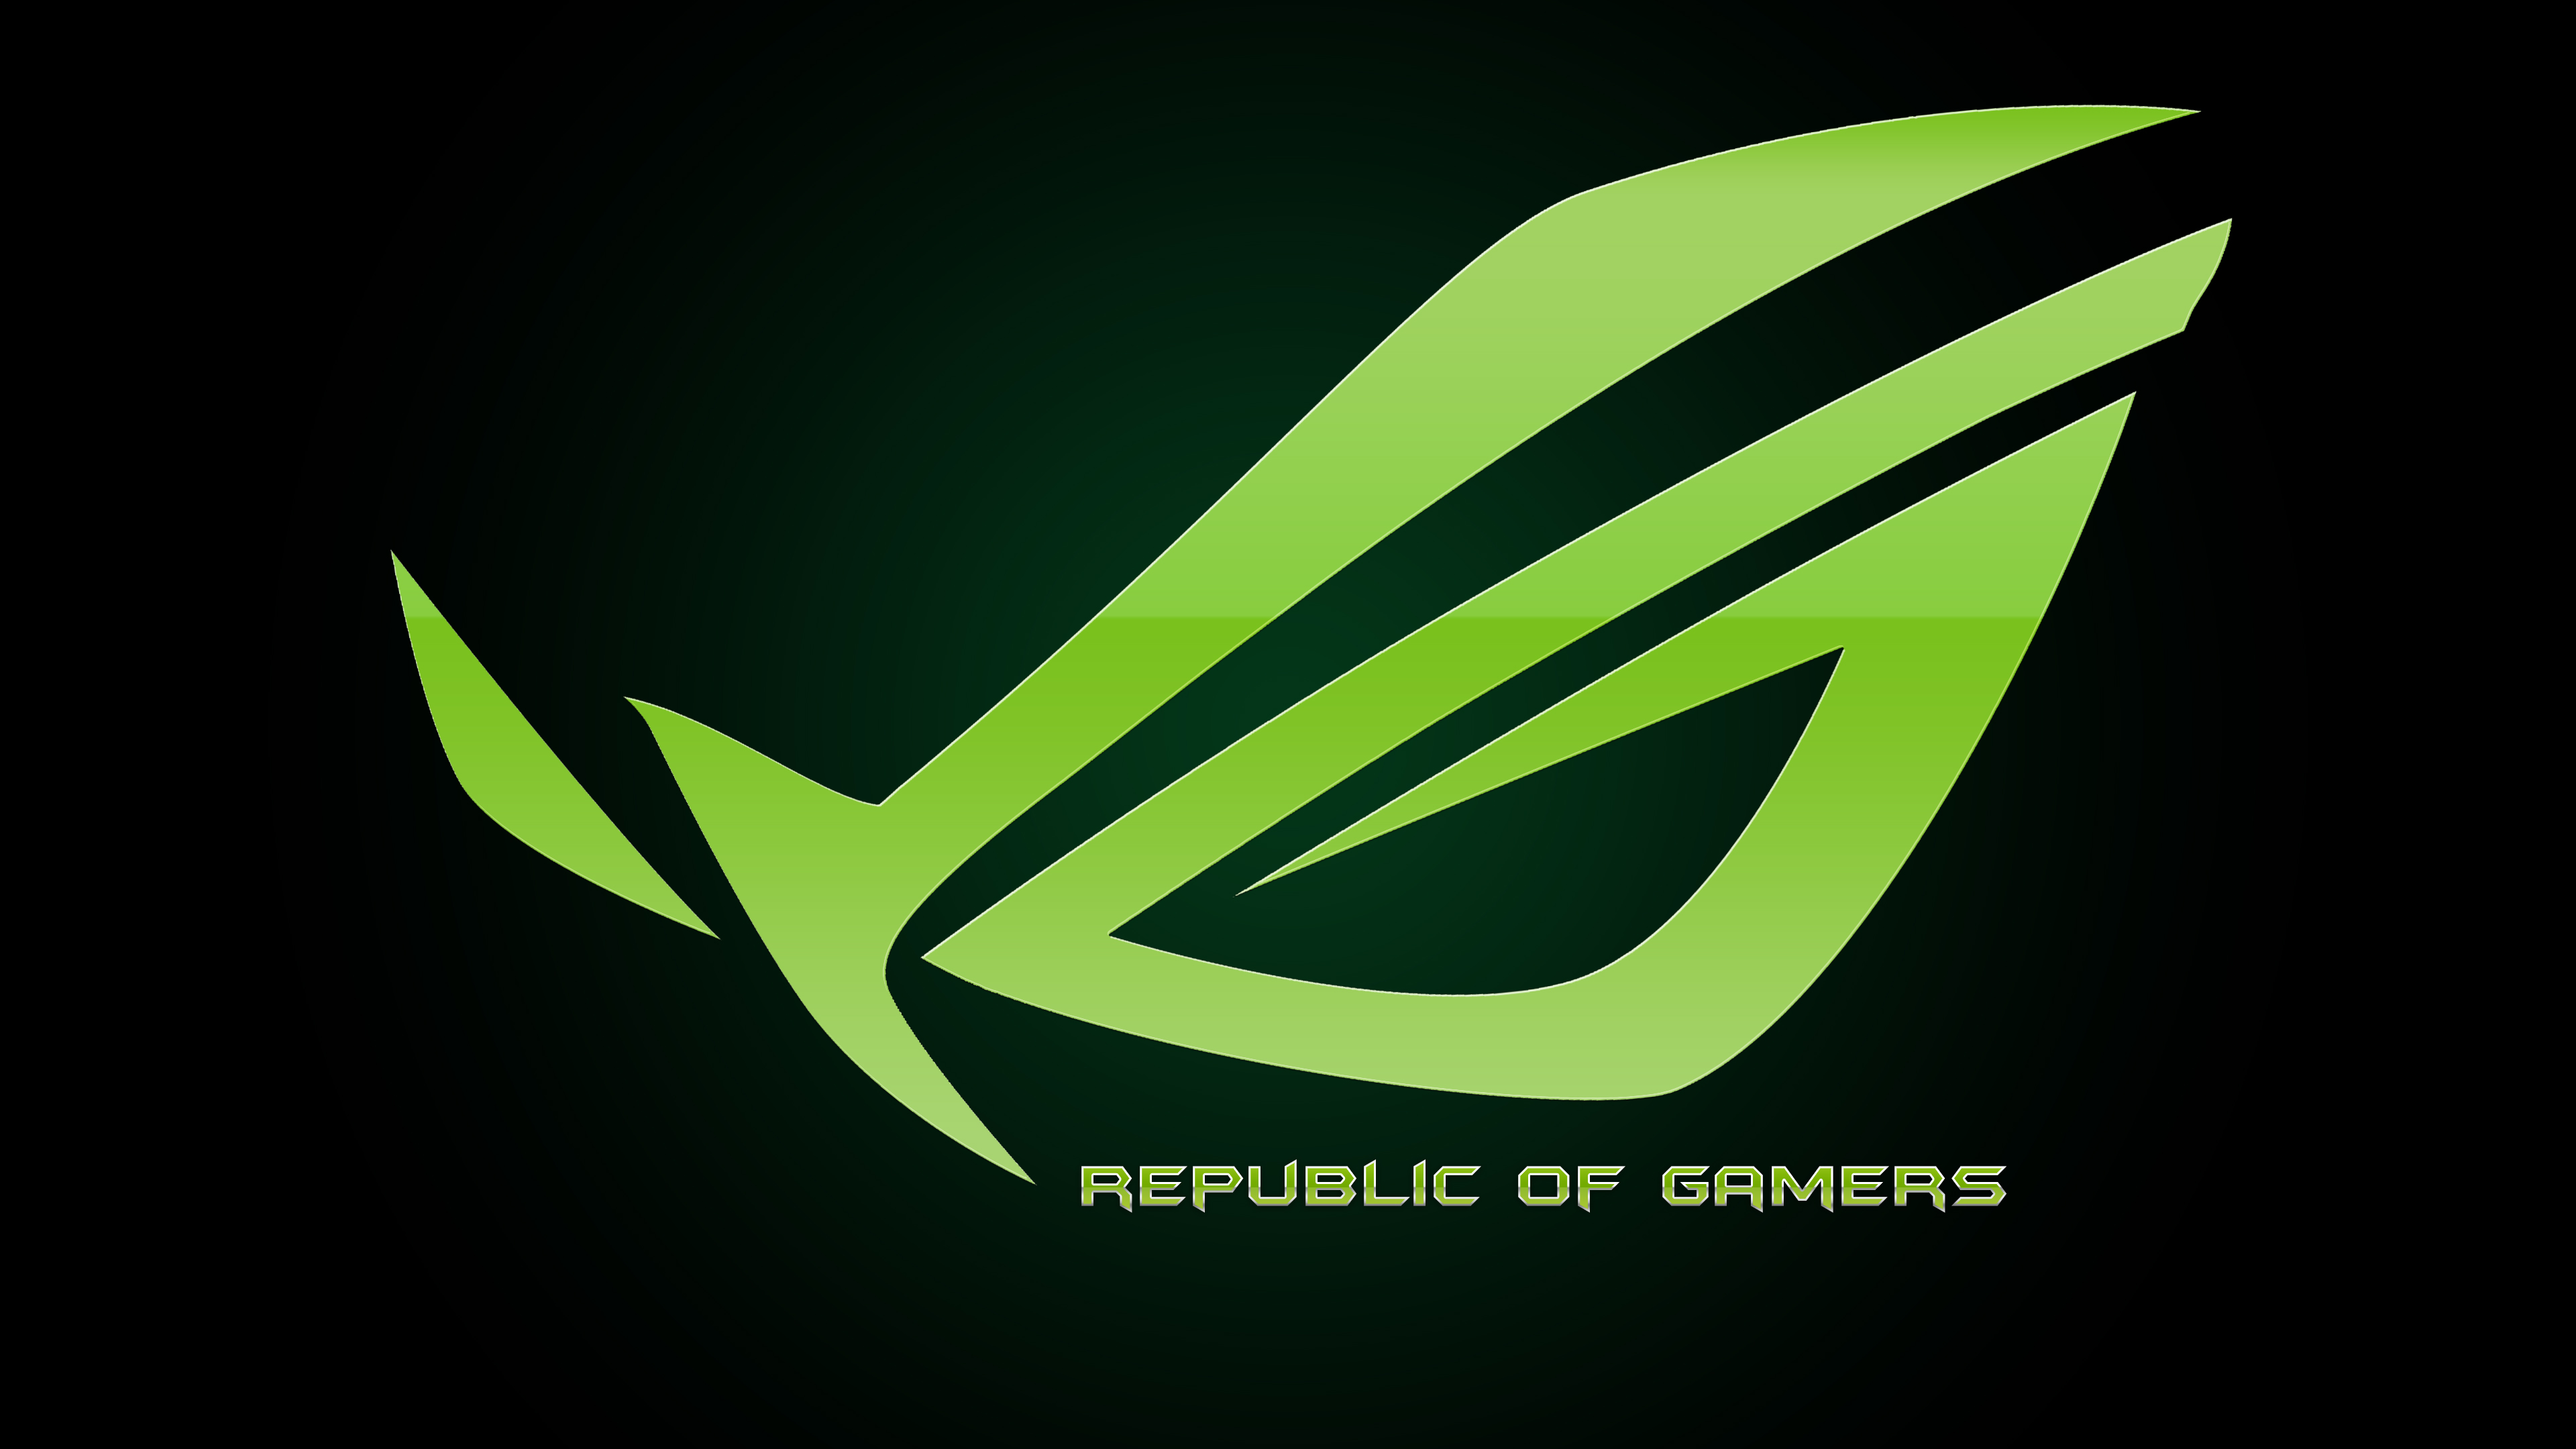 ROG 4K Wallpaper Collection 2014 rockgin [9]   by 3840 x 2160 3840x2160